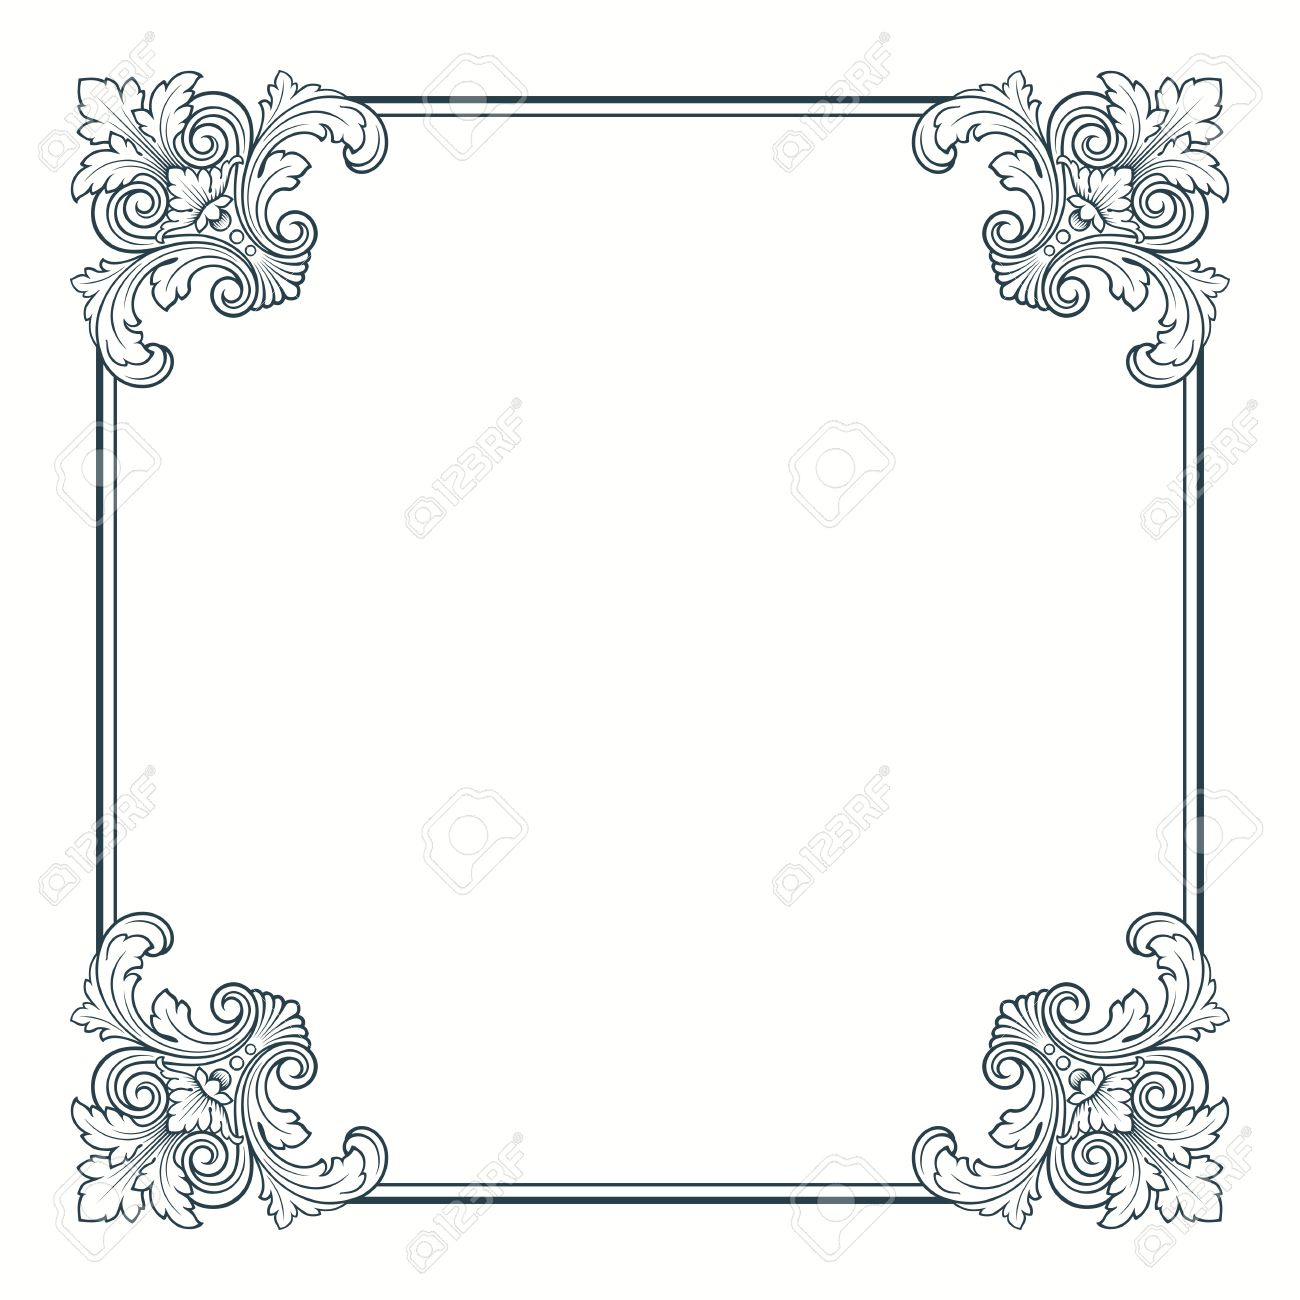 Calligraphic Ornate Vintage Frame Border Decorative Design Stock Vector